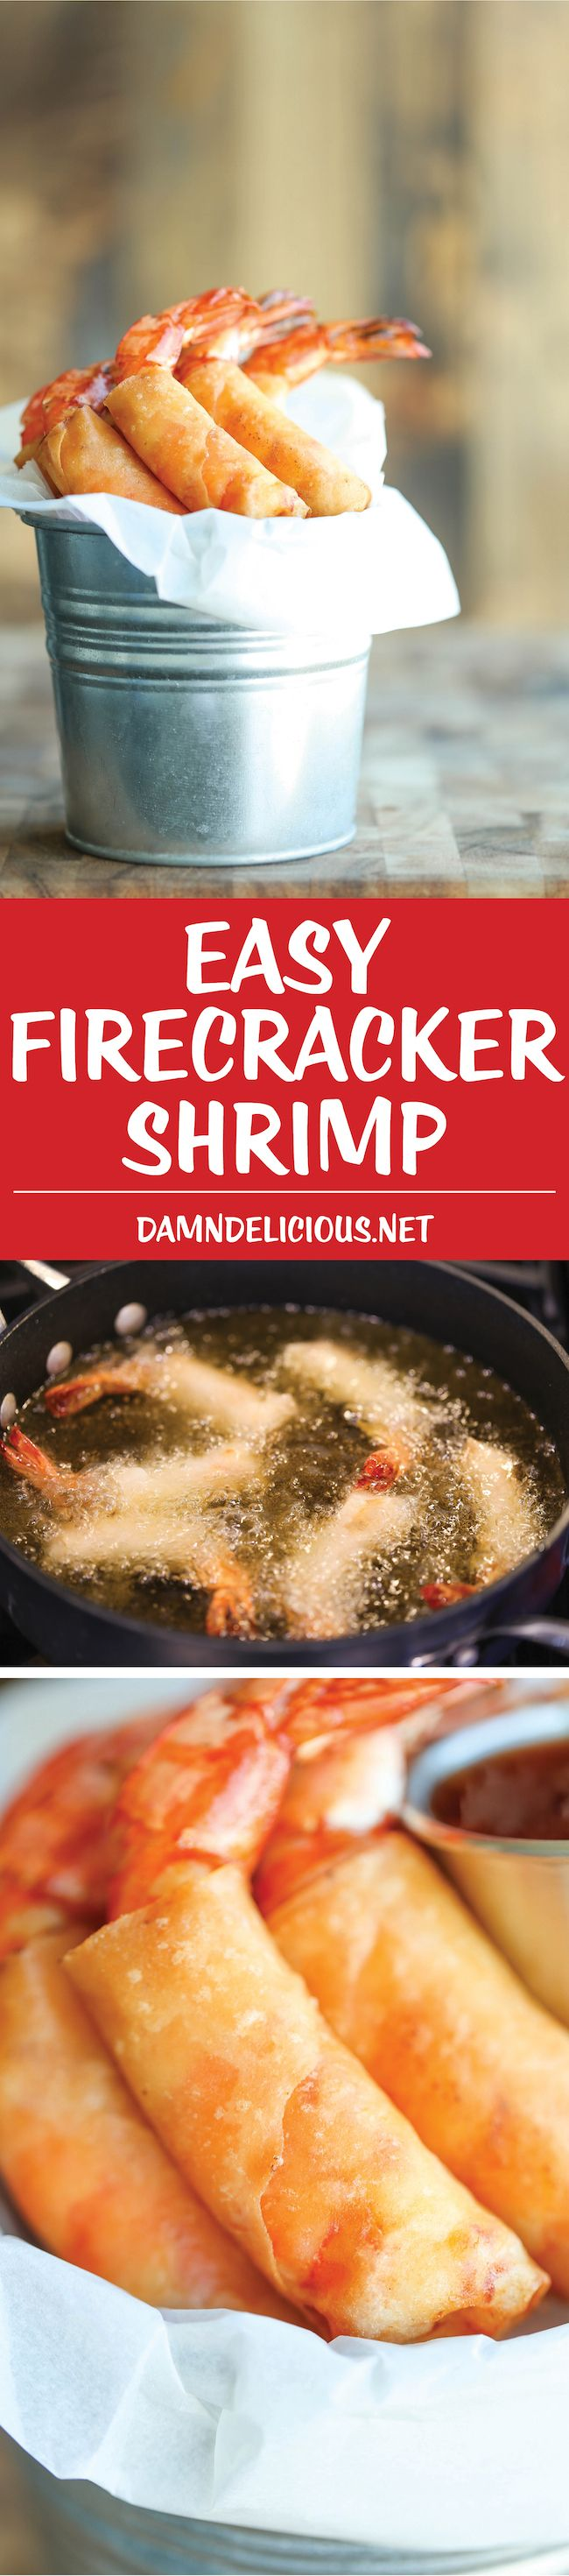 Game maker color blend - Easy Firecracker Shrimp